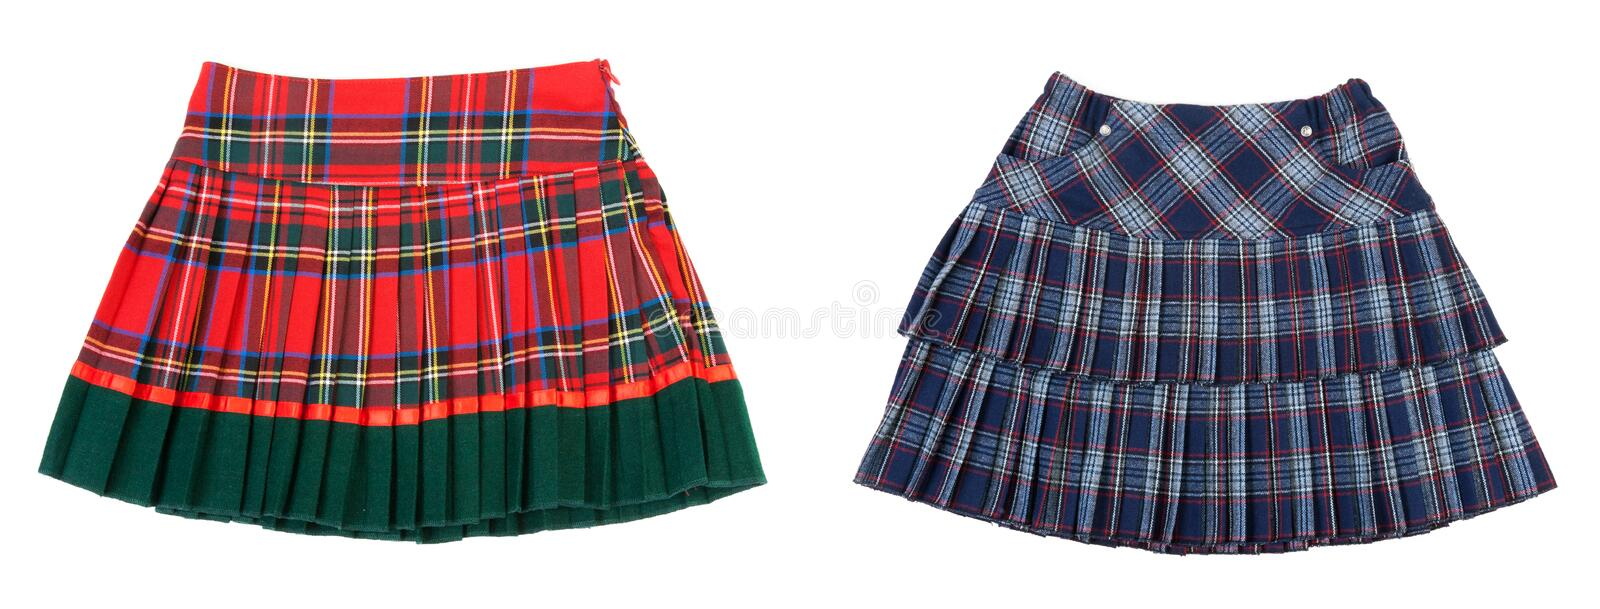 Download Collage two striped skirts stock photo. Image of clothes - 17088732